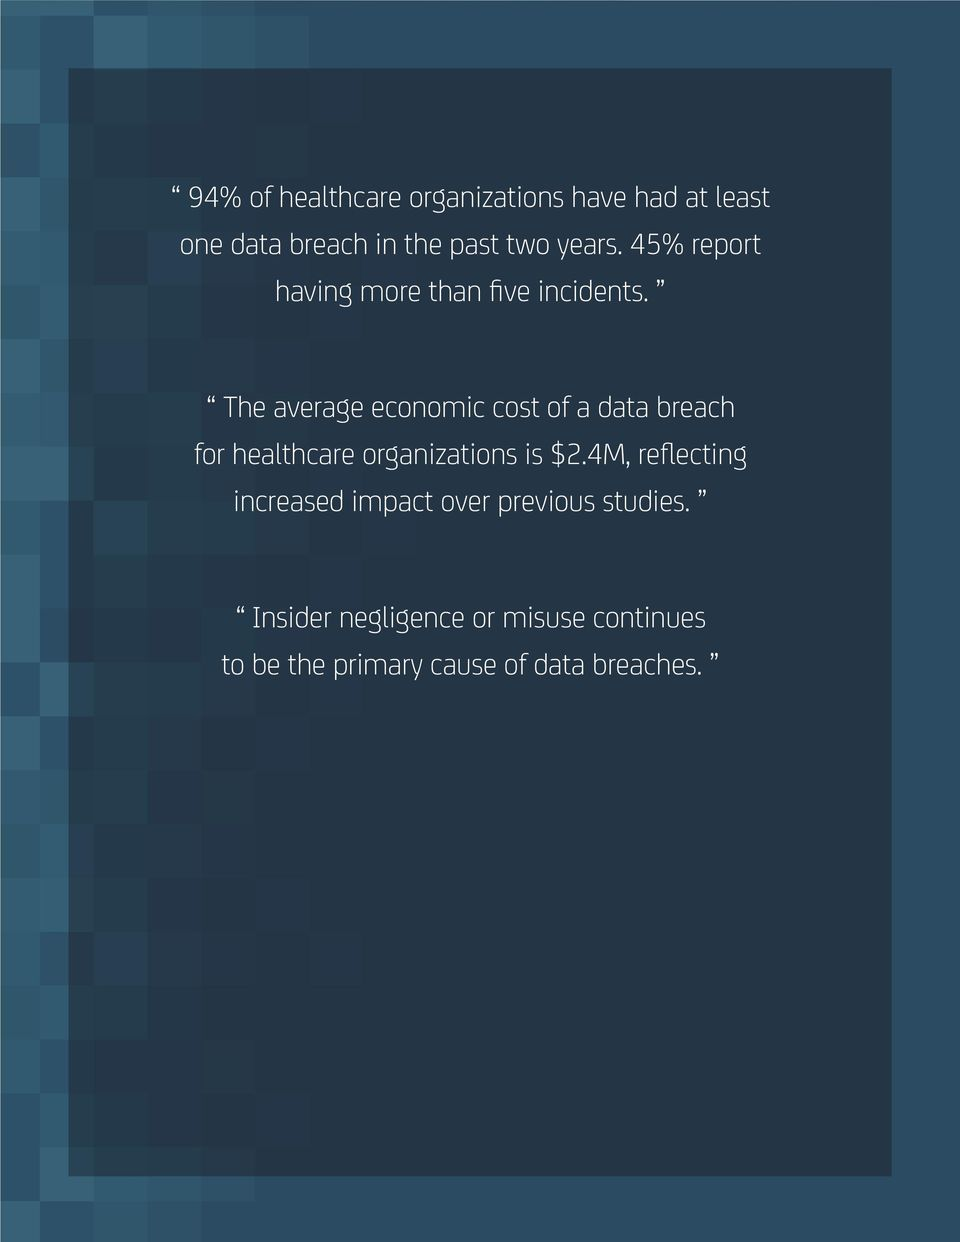 The average economic cost of a data breach for healthcare organizations is $2.